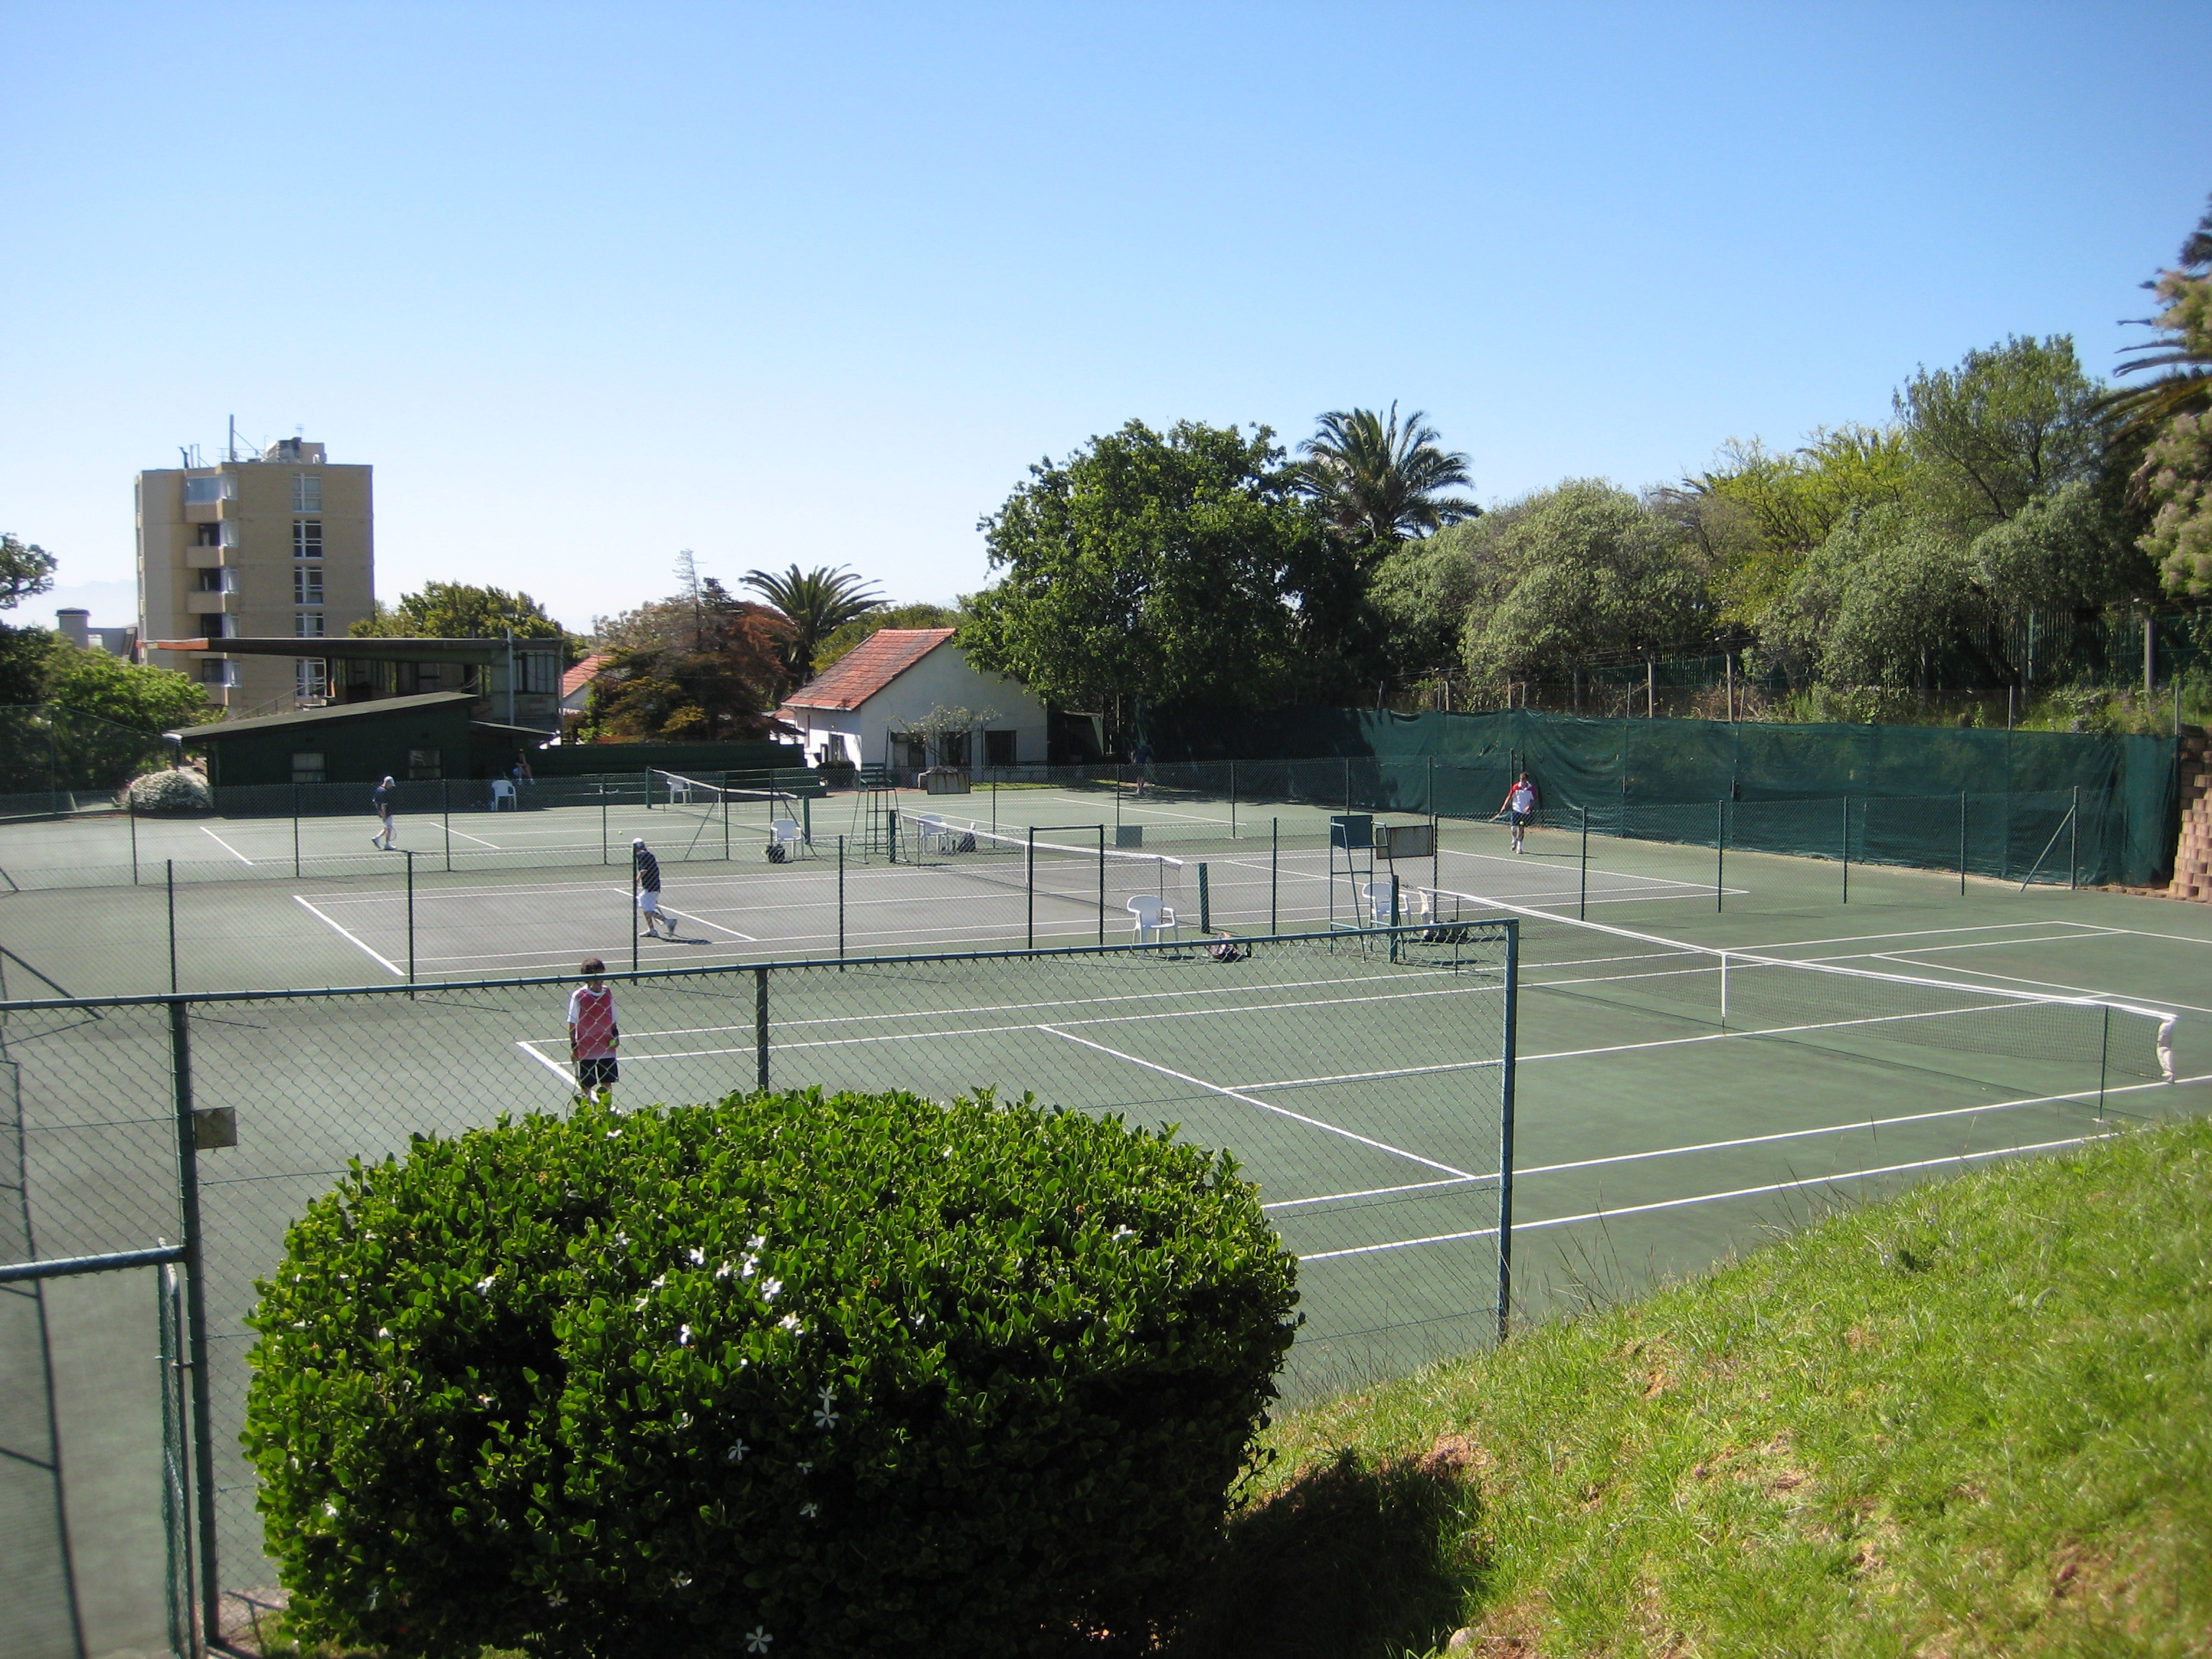 Boys playing tennis